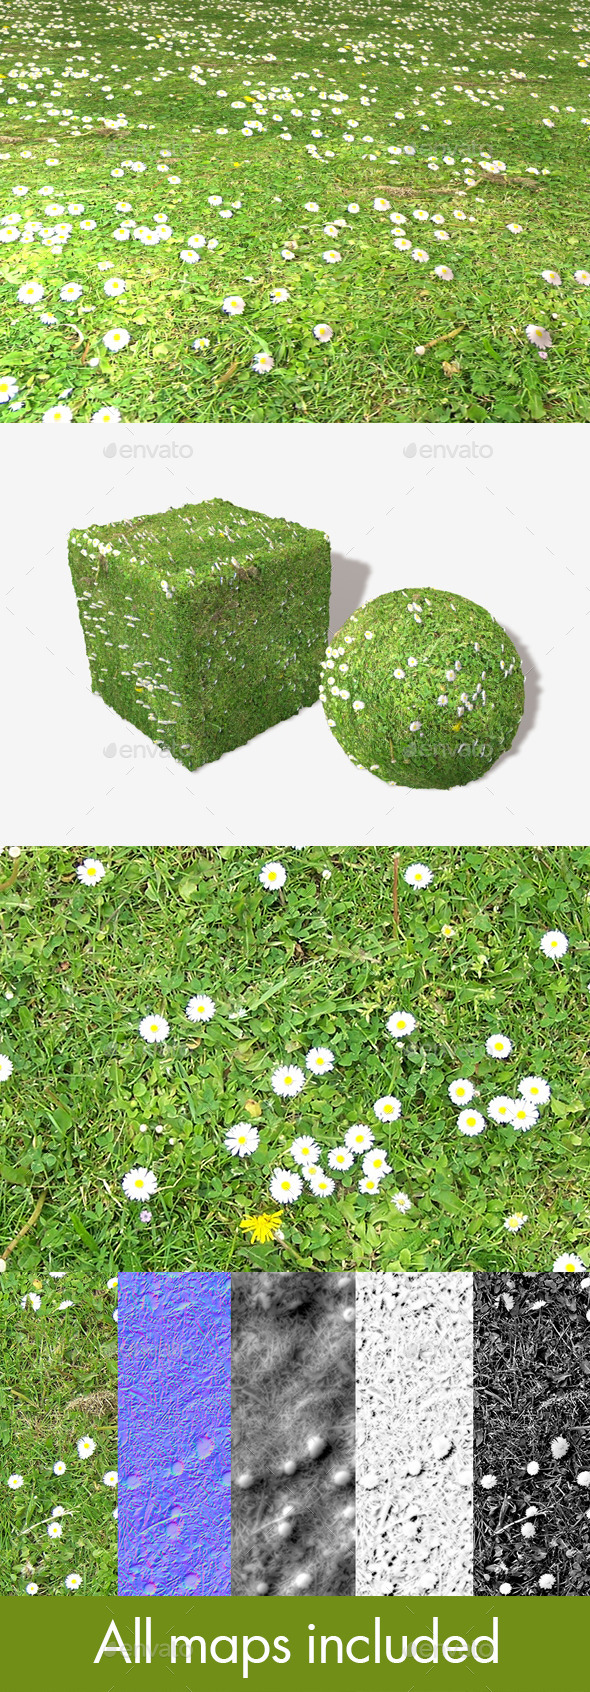 Daisy Lawn Seamless Texture - 3DOcean Item for Sale